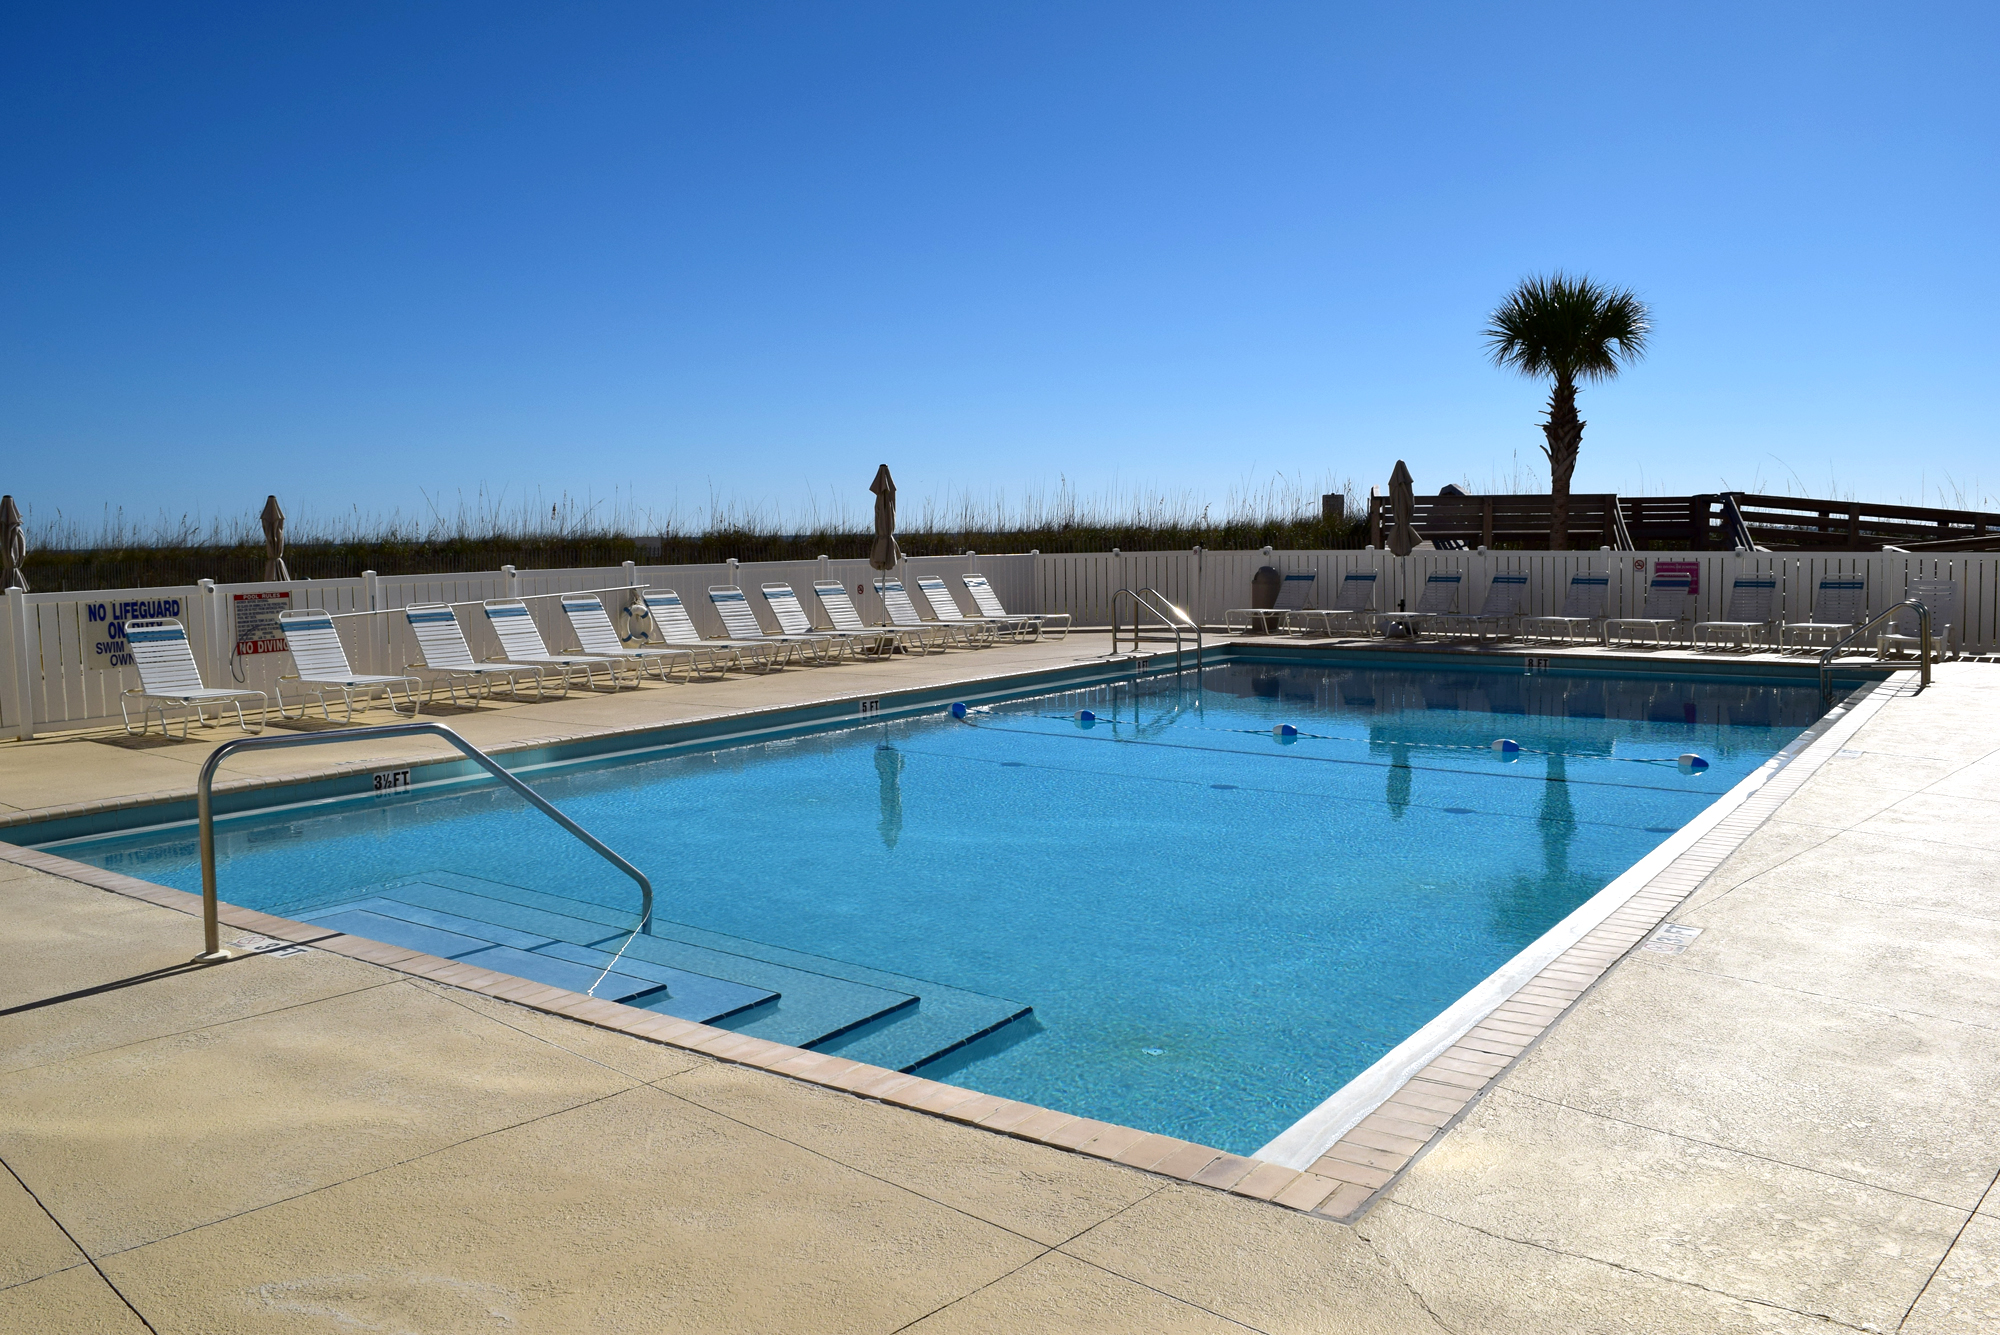 Regency Towers #204E Condo rental in Regency Towers Pensacola Beach in Pensacola Beach Florida - #32